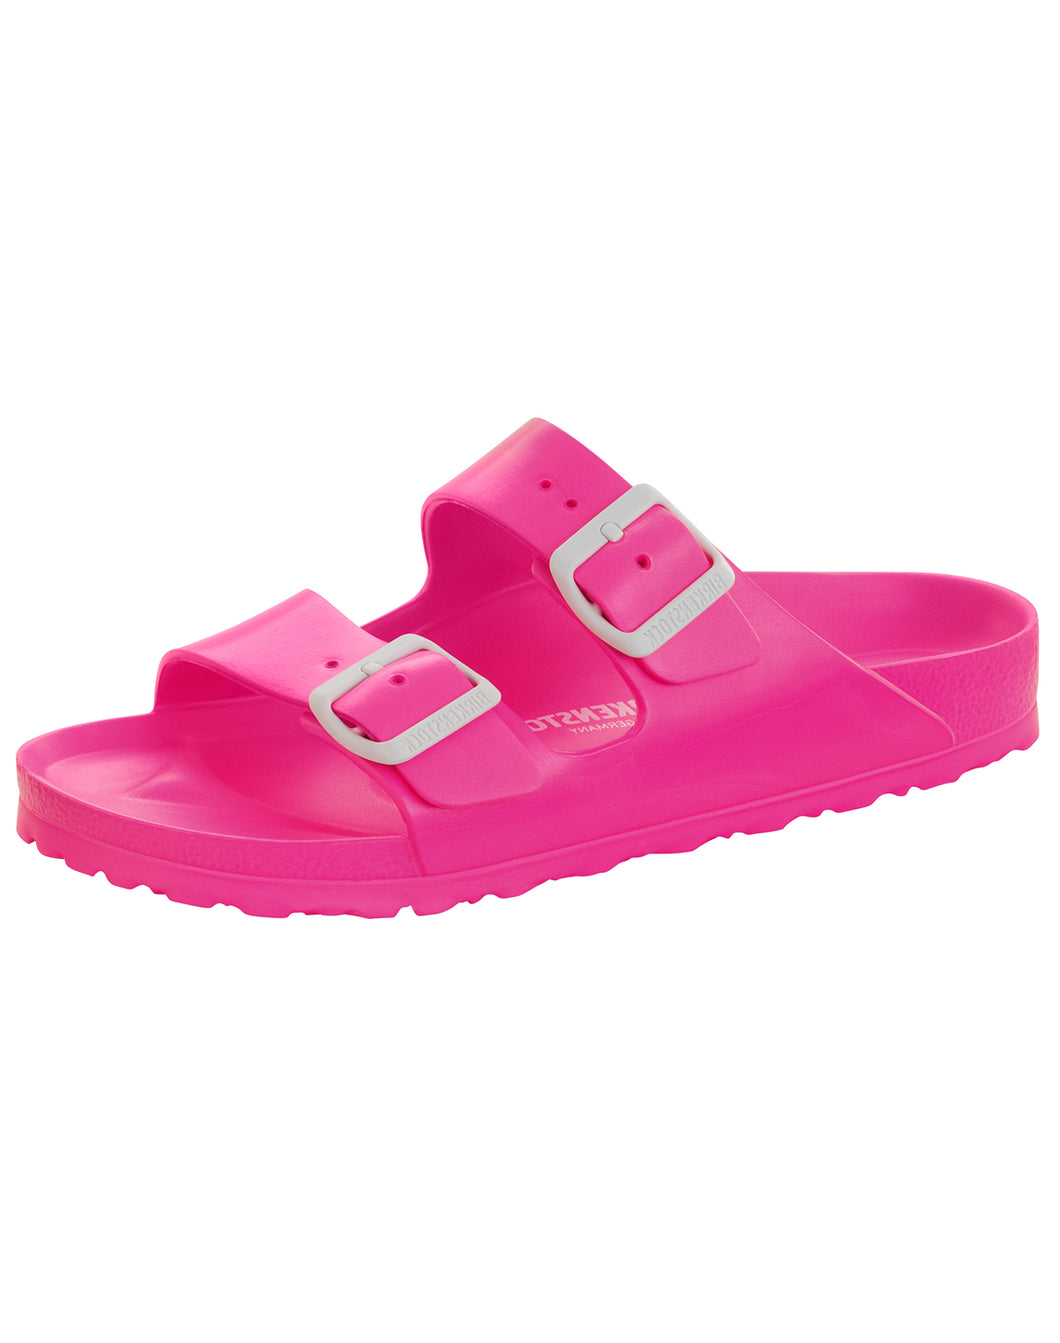 BIRKENSTOCK ARIZONA NEON PINK EVA NARROW